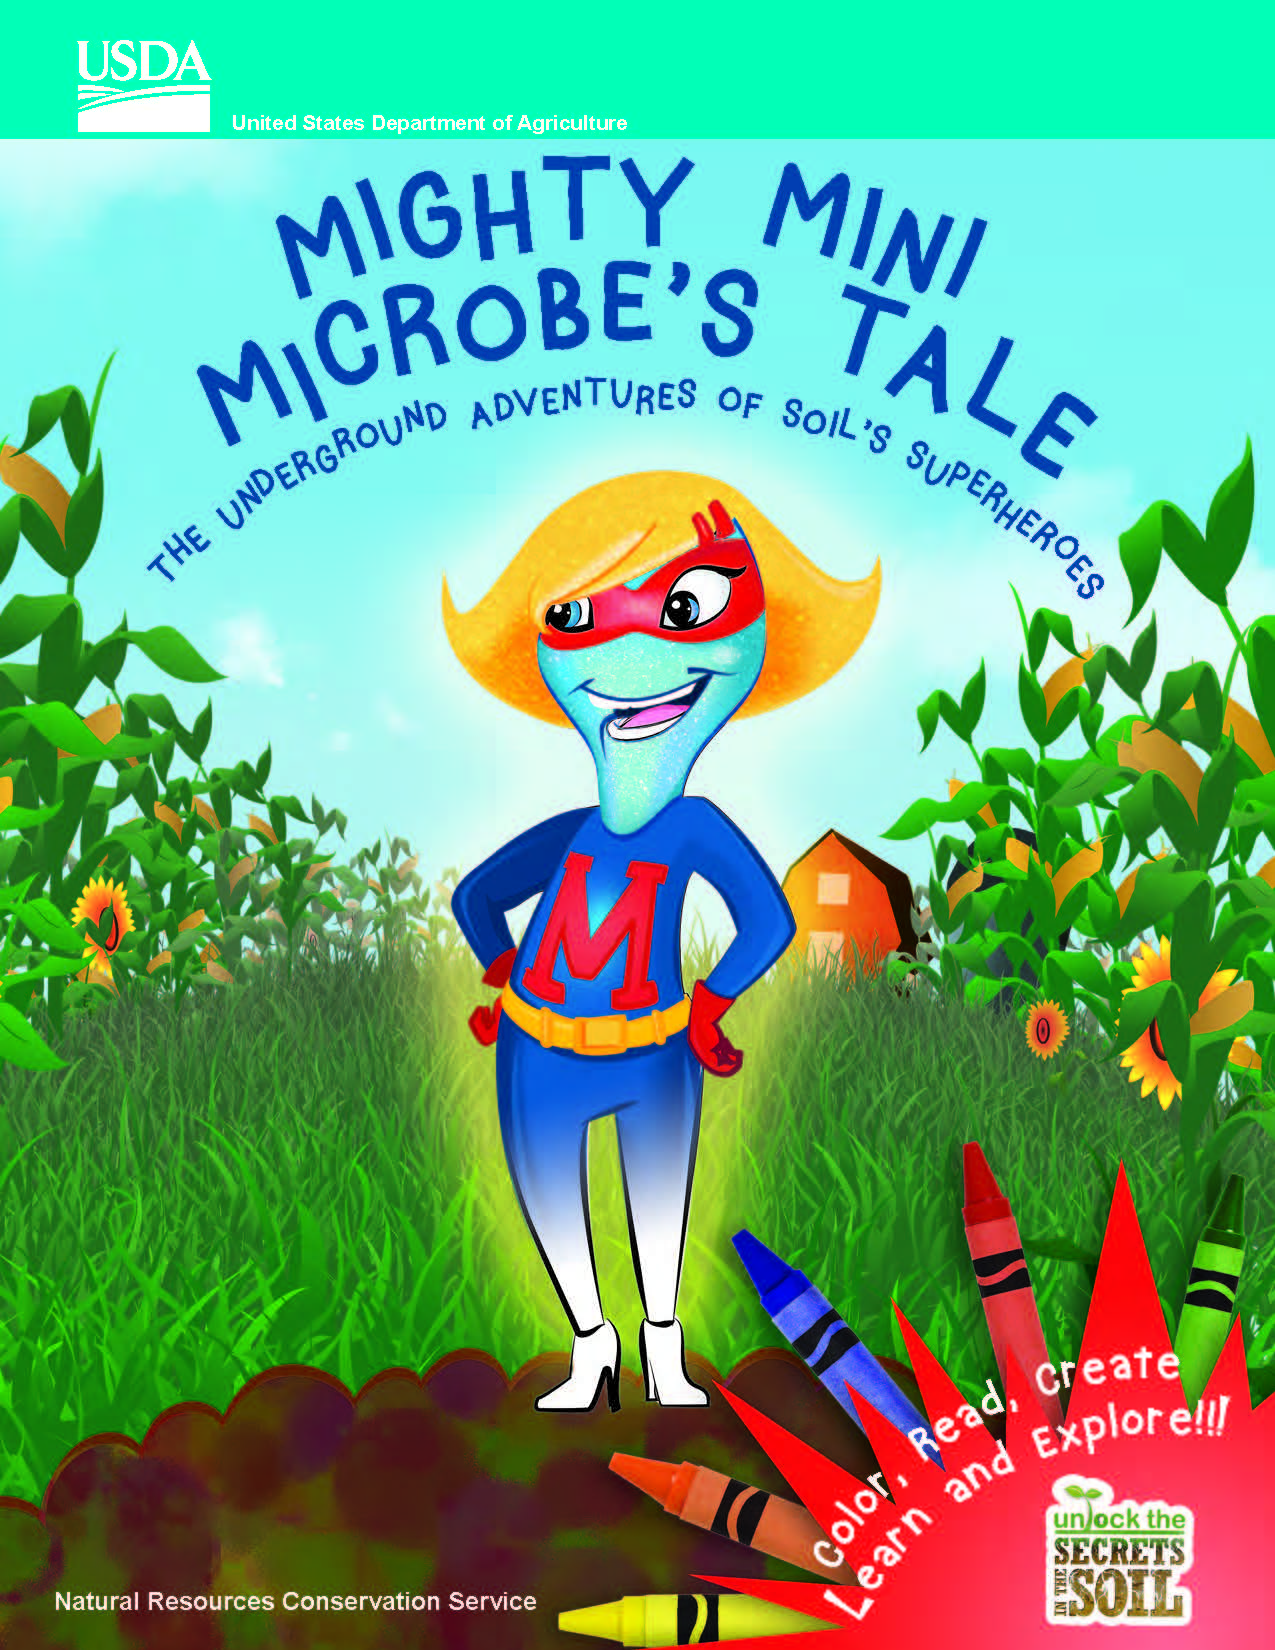 Mighty Mini Microbe's Tale – Color, Read, Create, and Learn